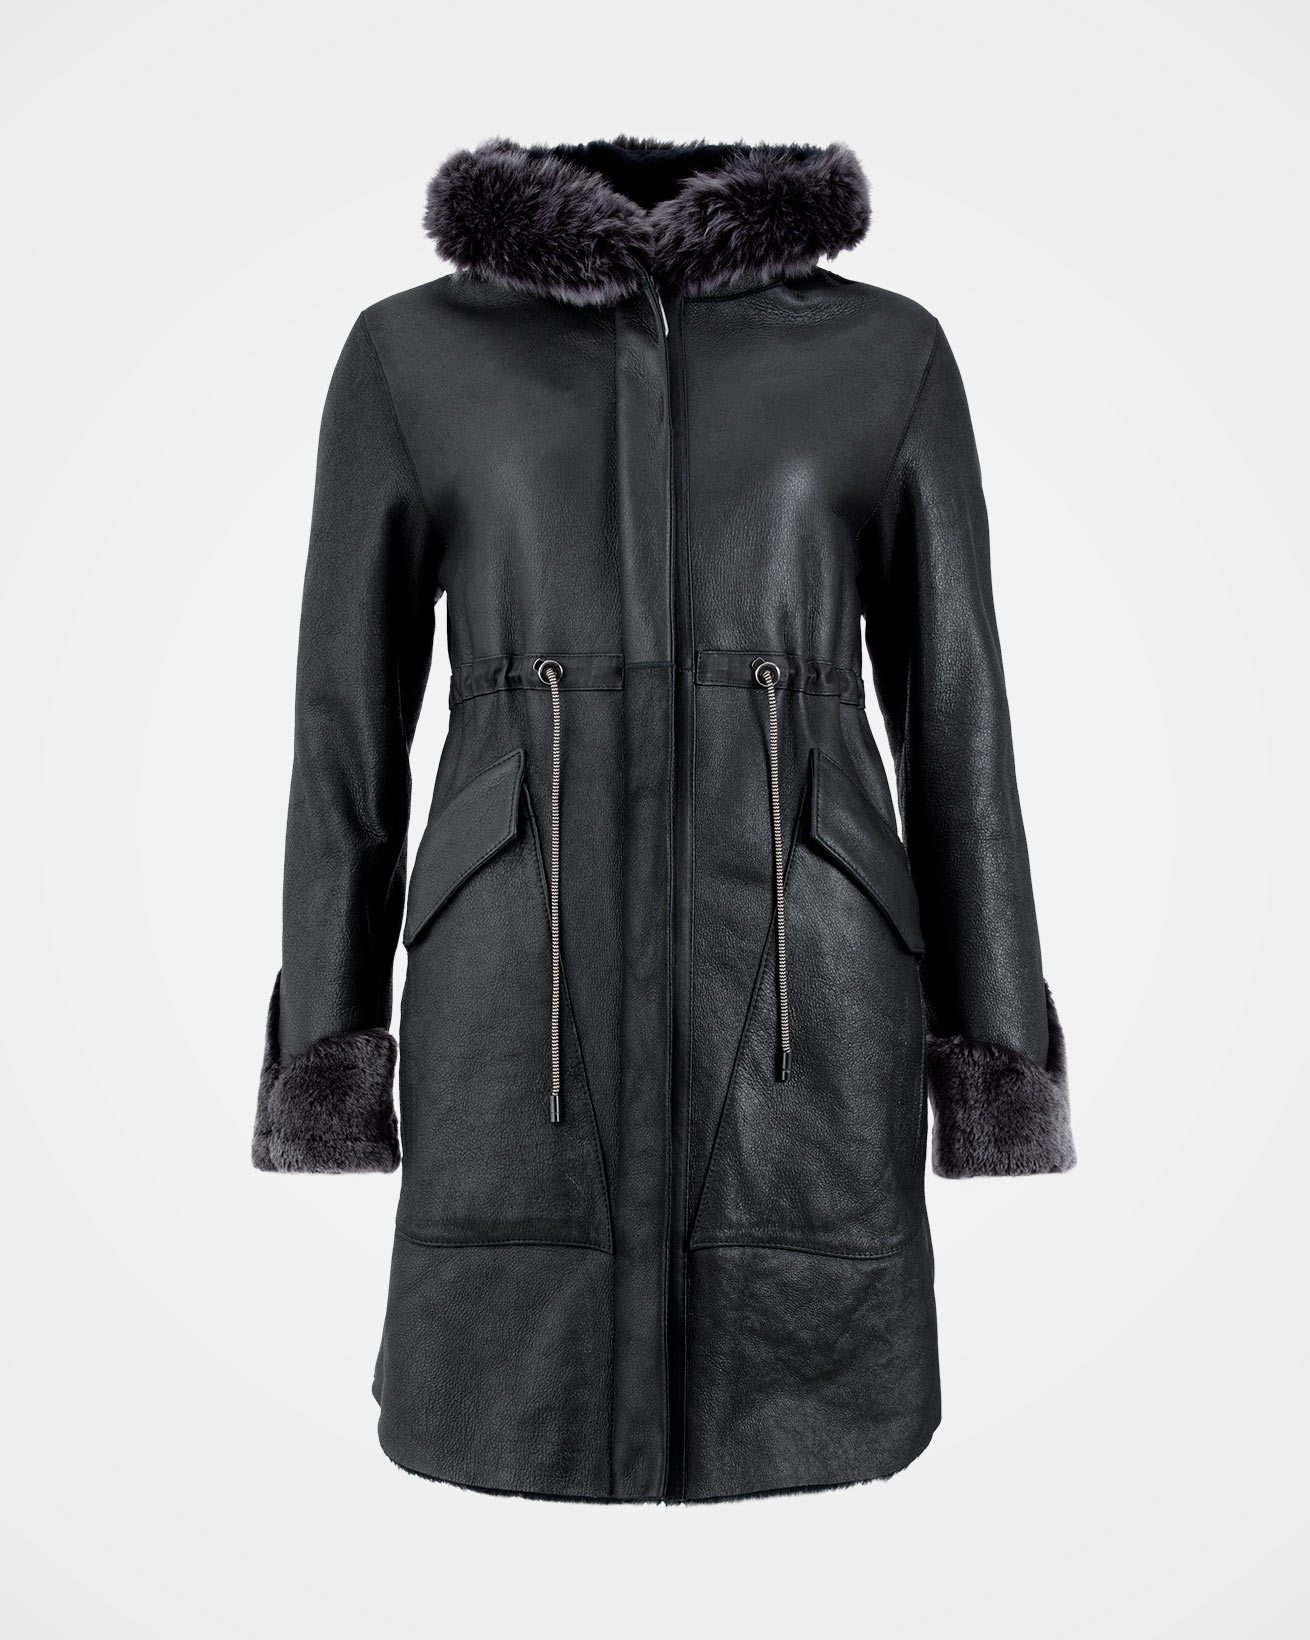 7623_sheepskin-hooded-parka_dark-navy_front.jpg